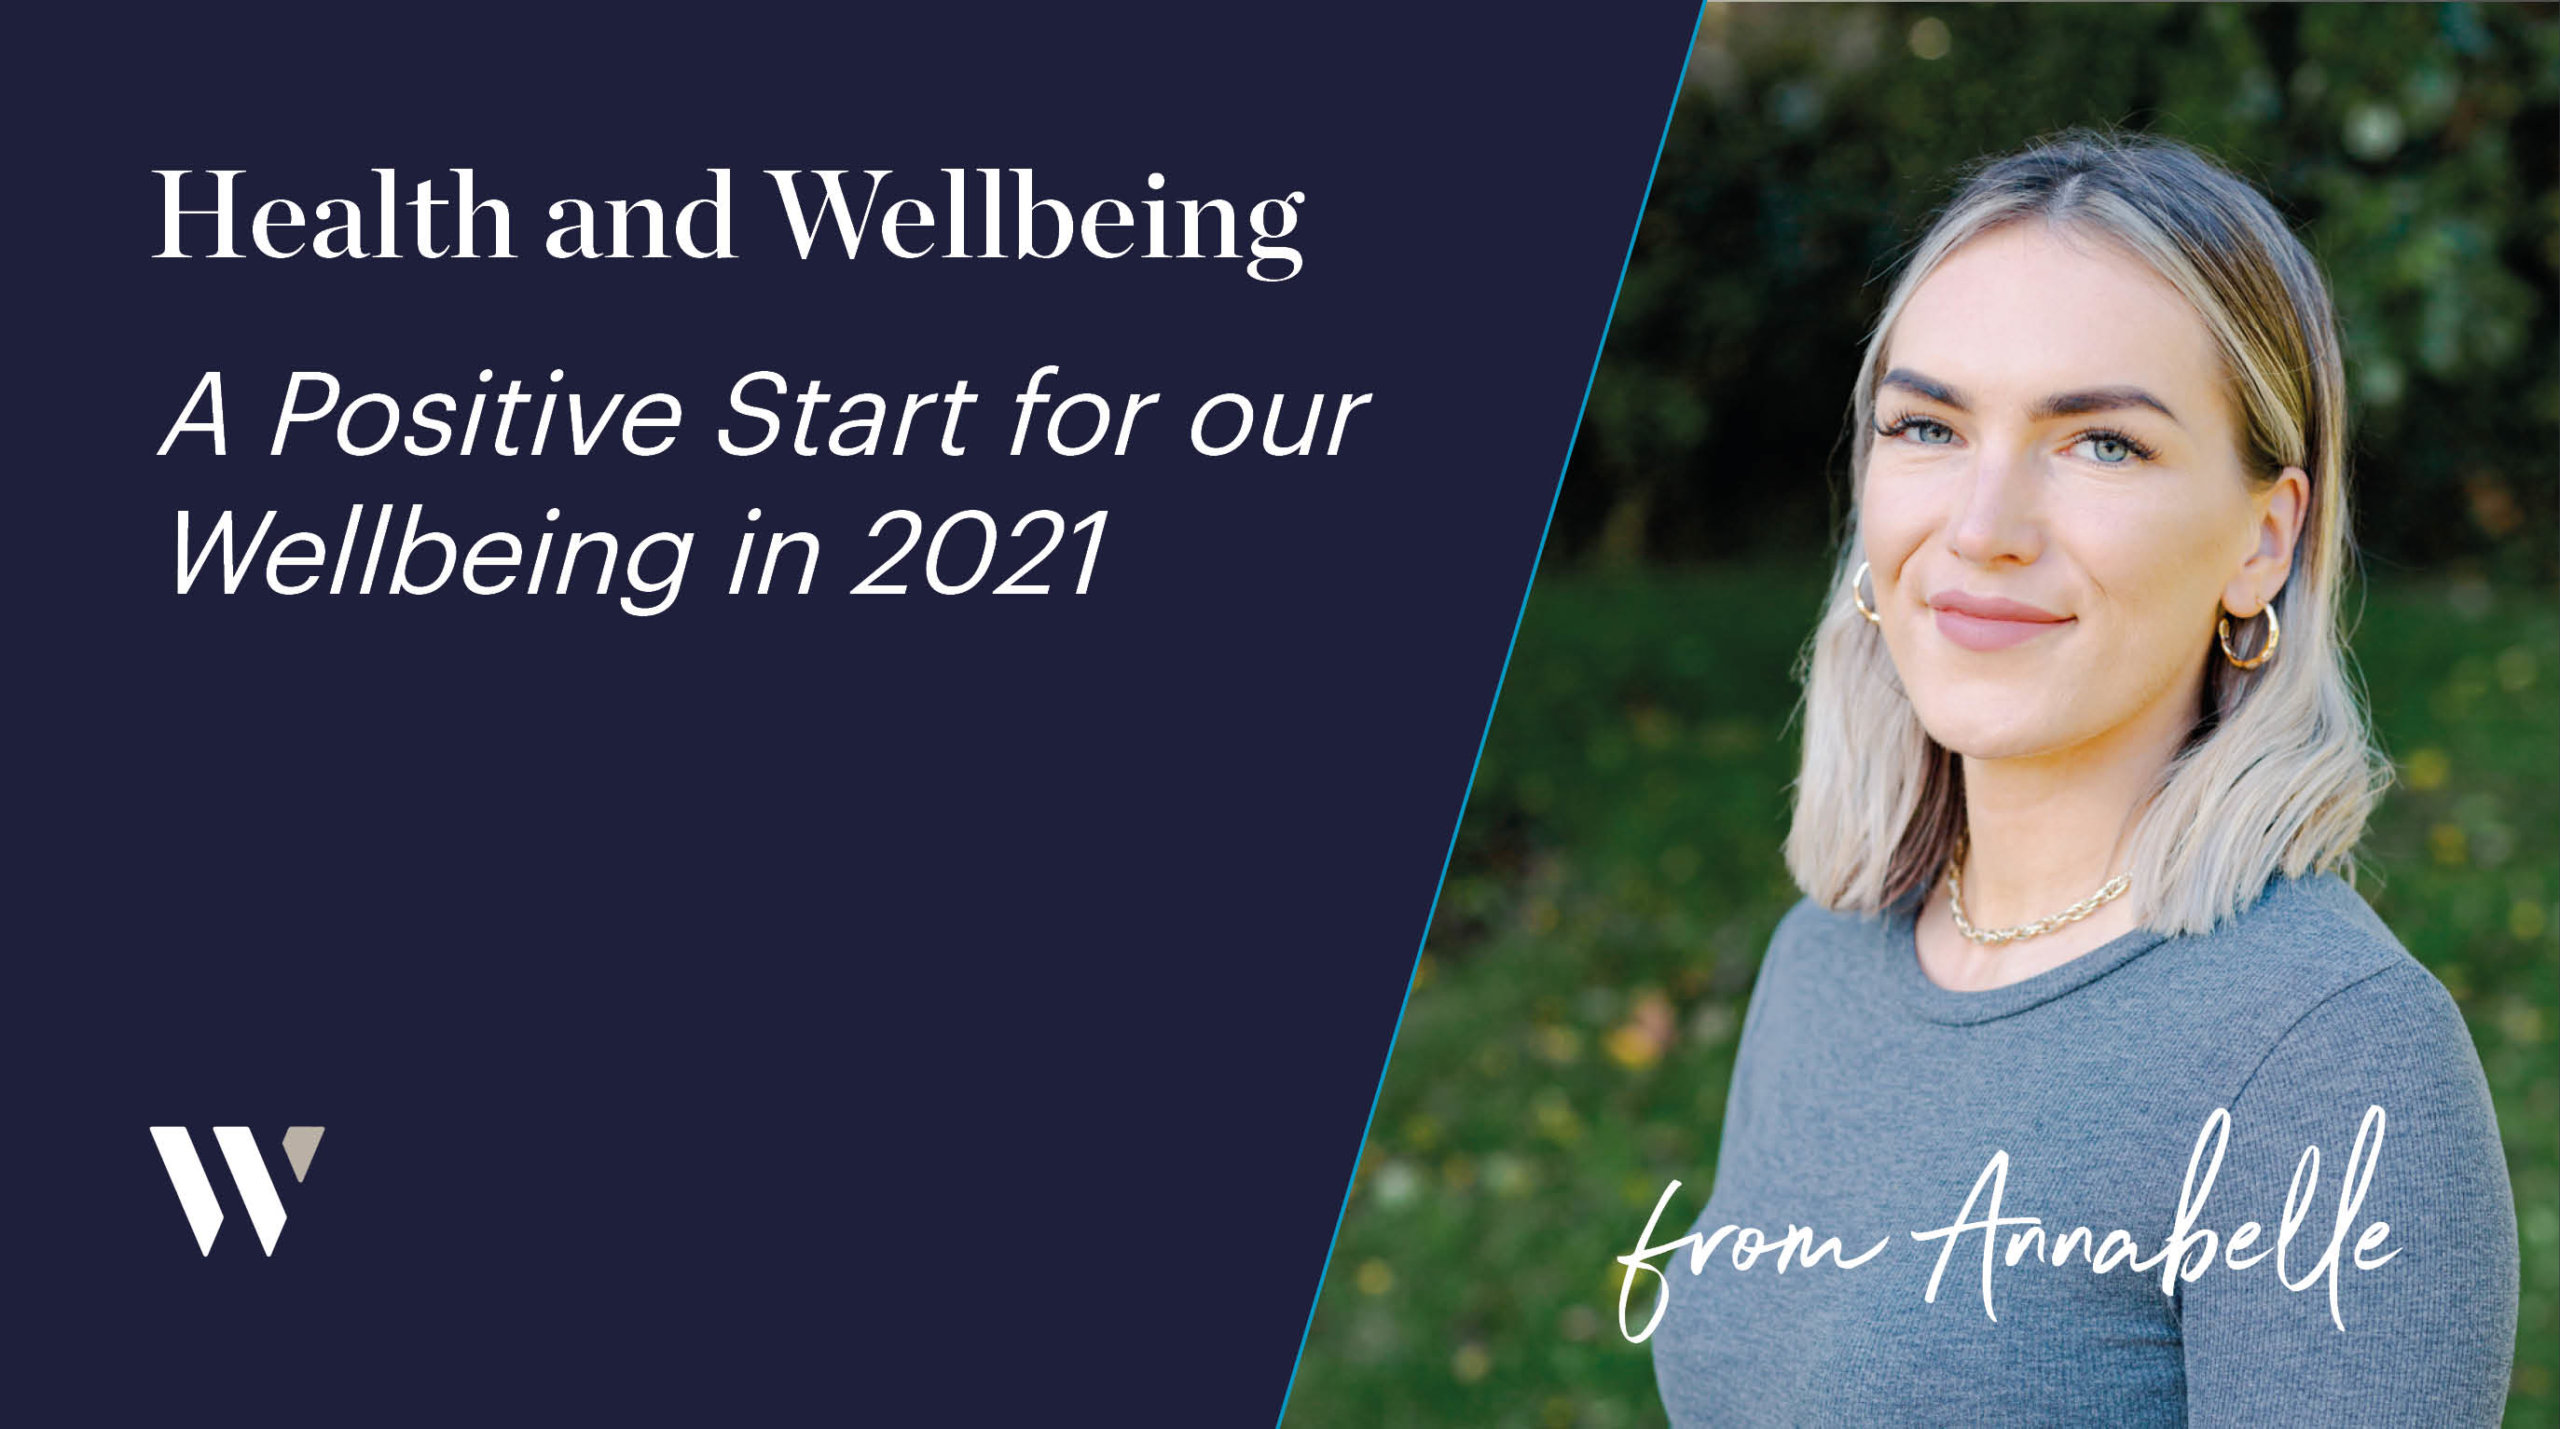 A Positive Start for our Wellbeing in 2021